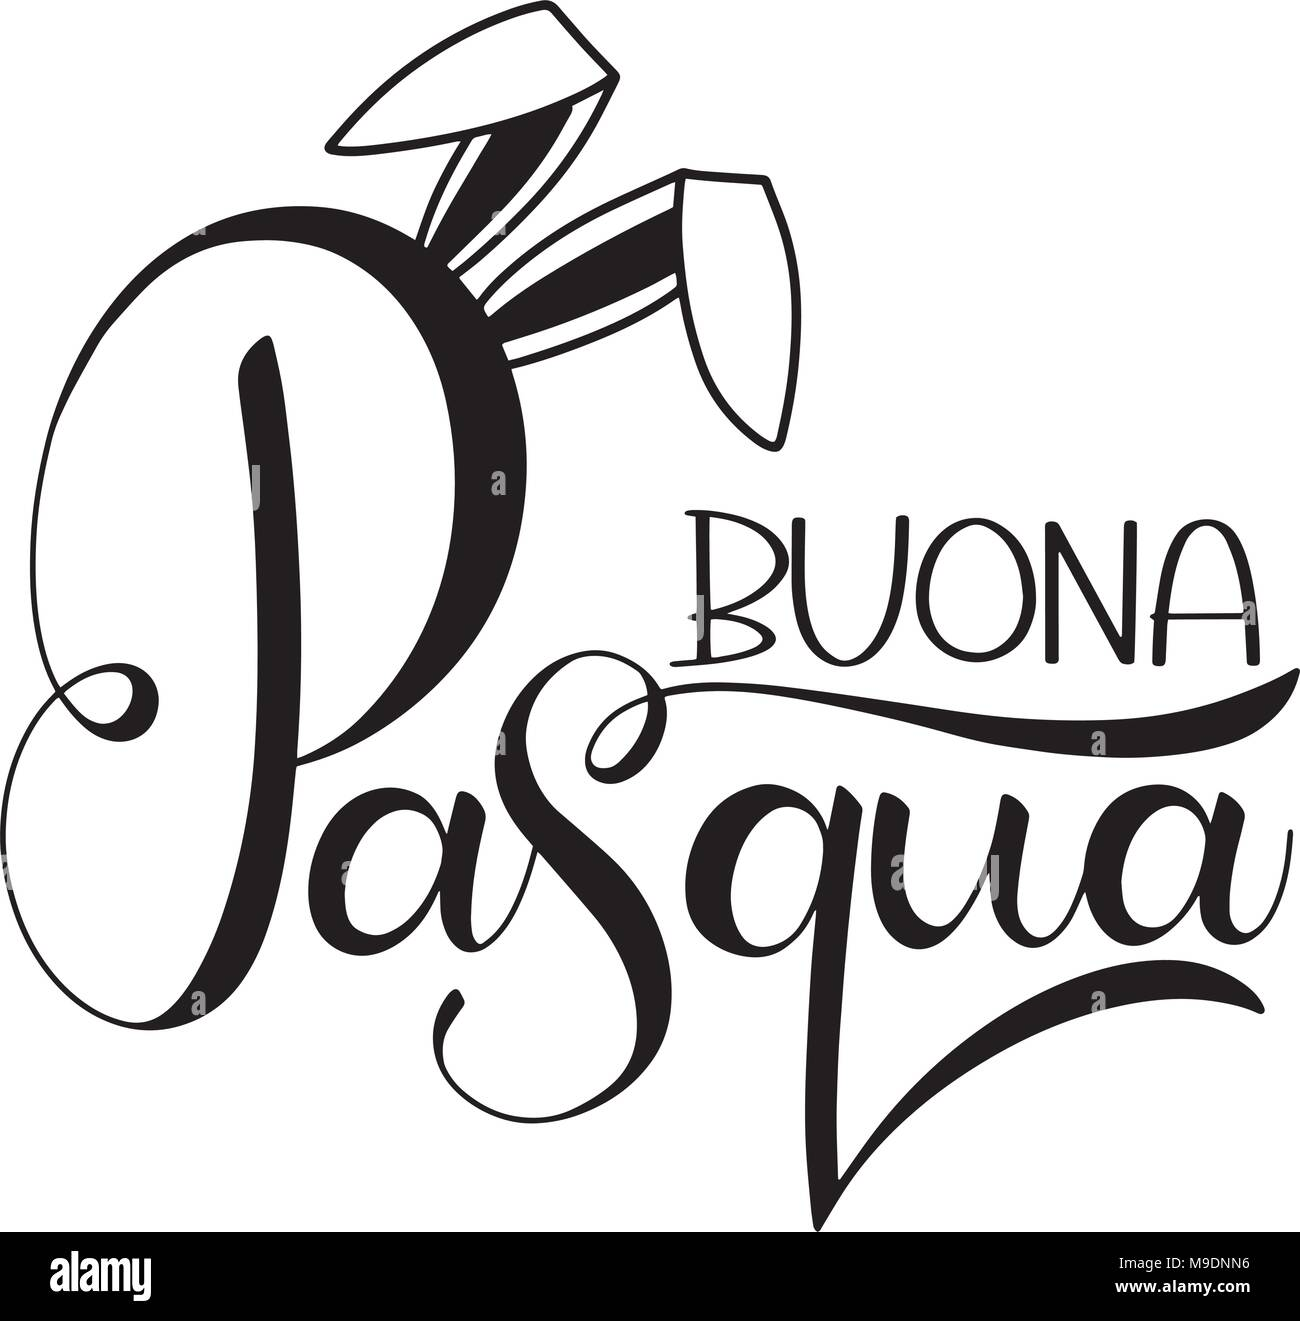 Buona pasqua happy easter in stock photos buona pasqua happy happy easter colorful lettering in italian hand written easter phrases kristyandbryce Gallery